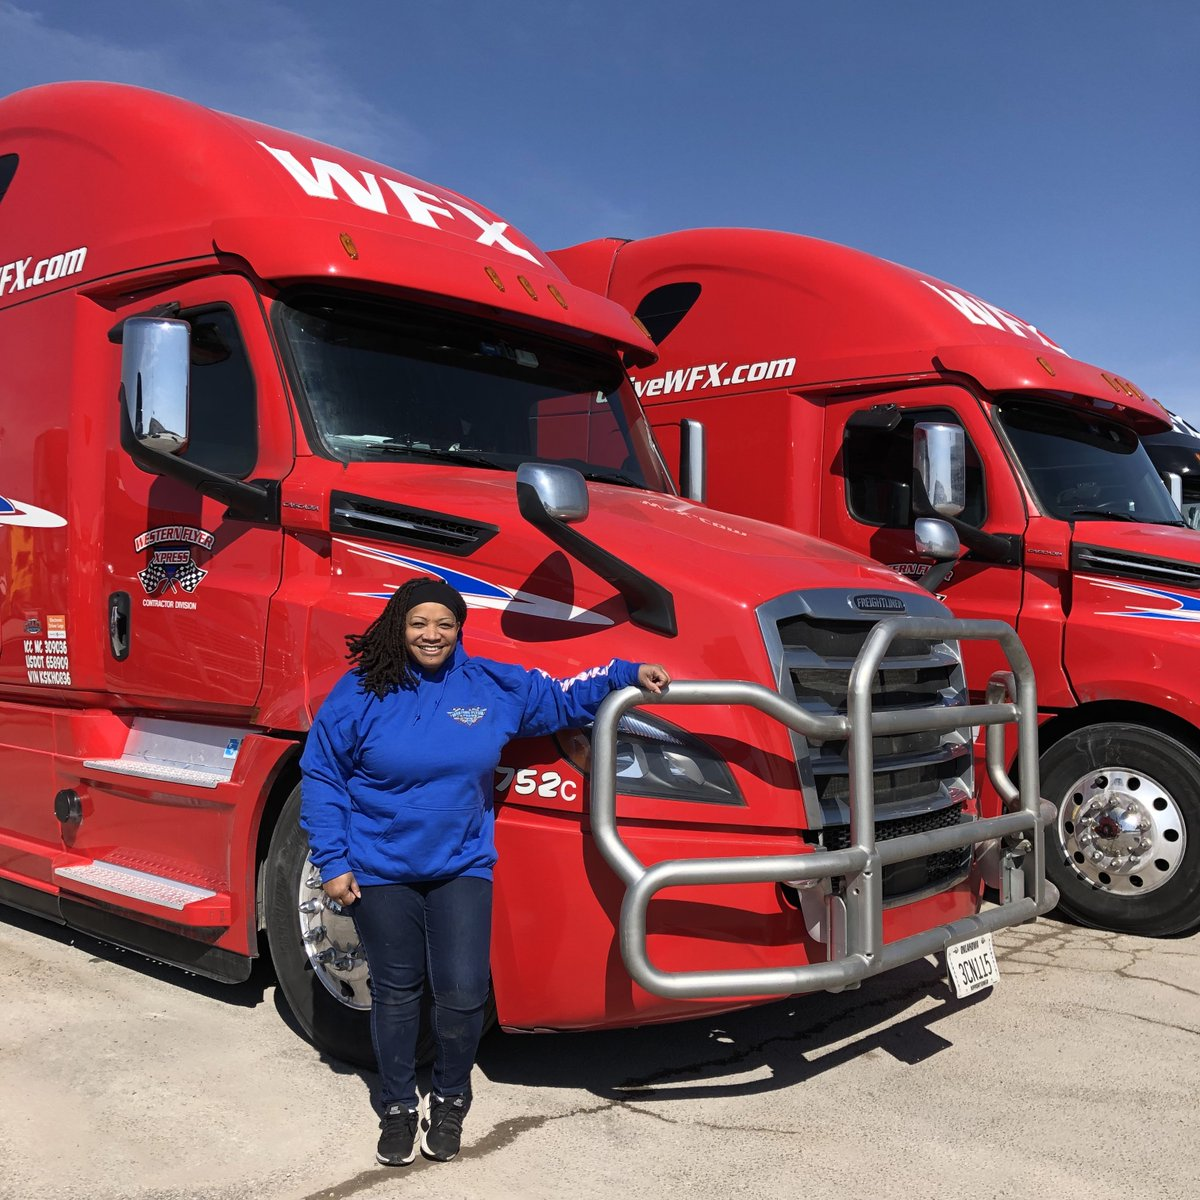 Laronda joined the WFX family this week - got into her newly-leased Cascadia, and hit the road with Jackson. Happy and safe driving!  #freightliner #onetheroad #Drivethedream #driveWFX #leasetoown #cdlDriver #cdlcontractor #otrdriver #womenintrucking